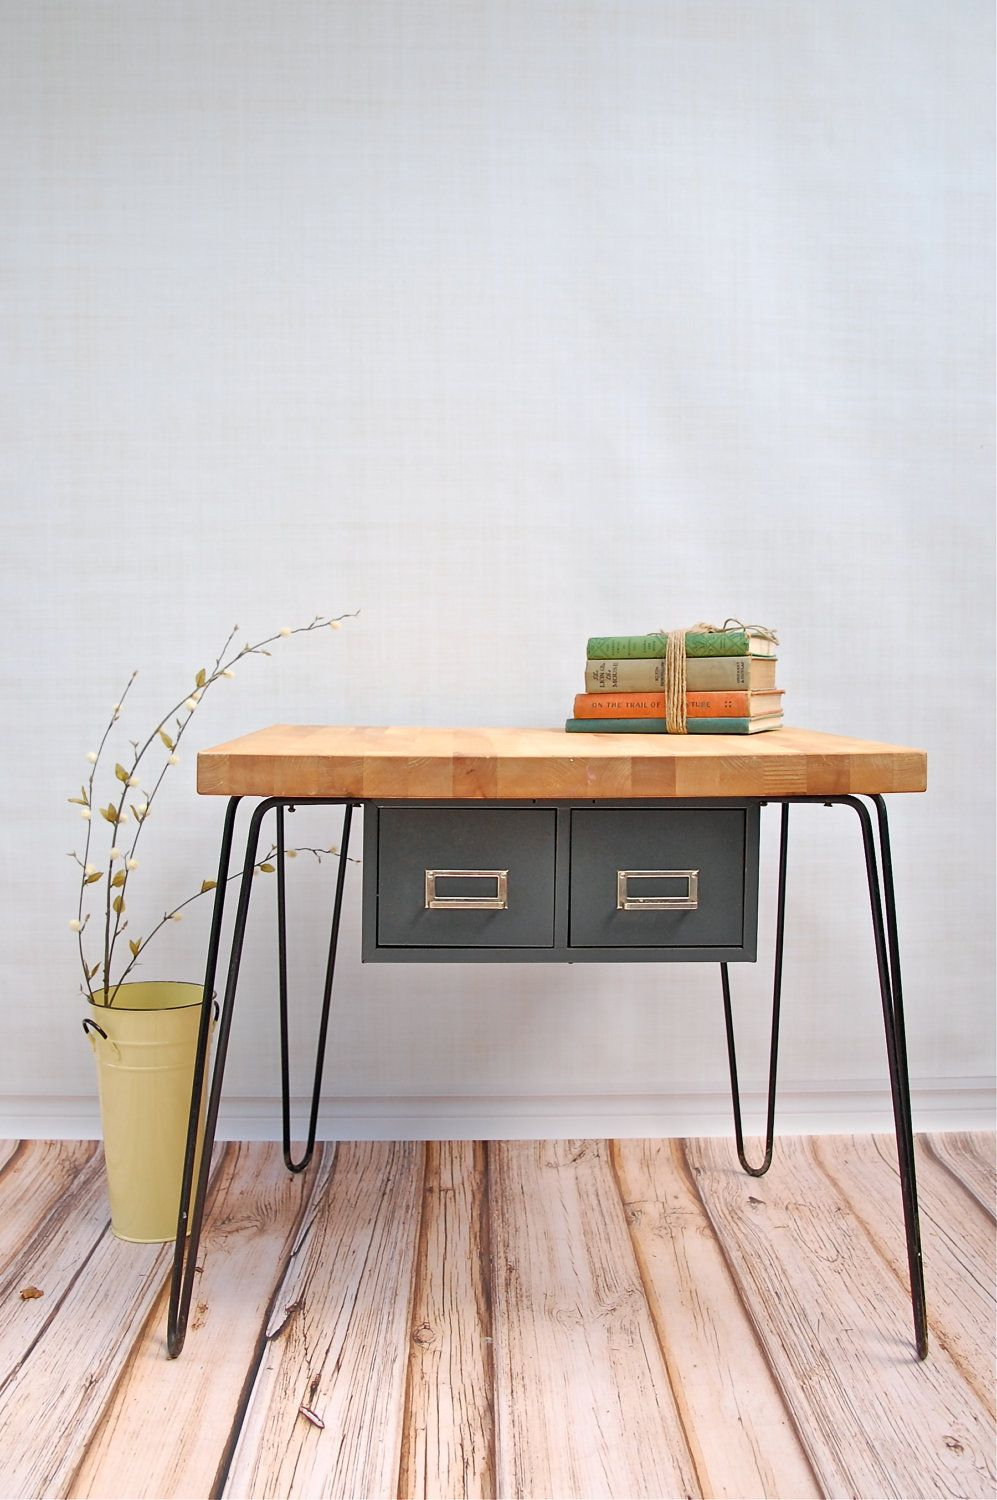 Buy Butcher Block Table Top: Butcher Block Counter From IKEA + Hairpin Legs And Make A